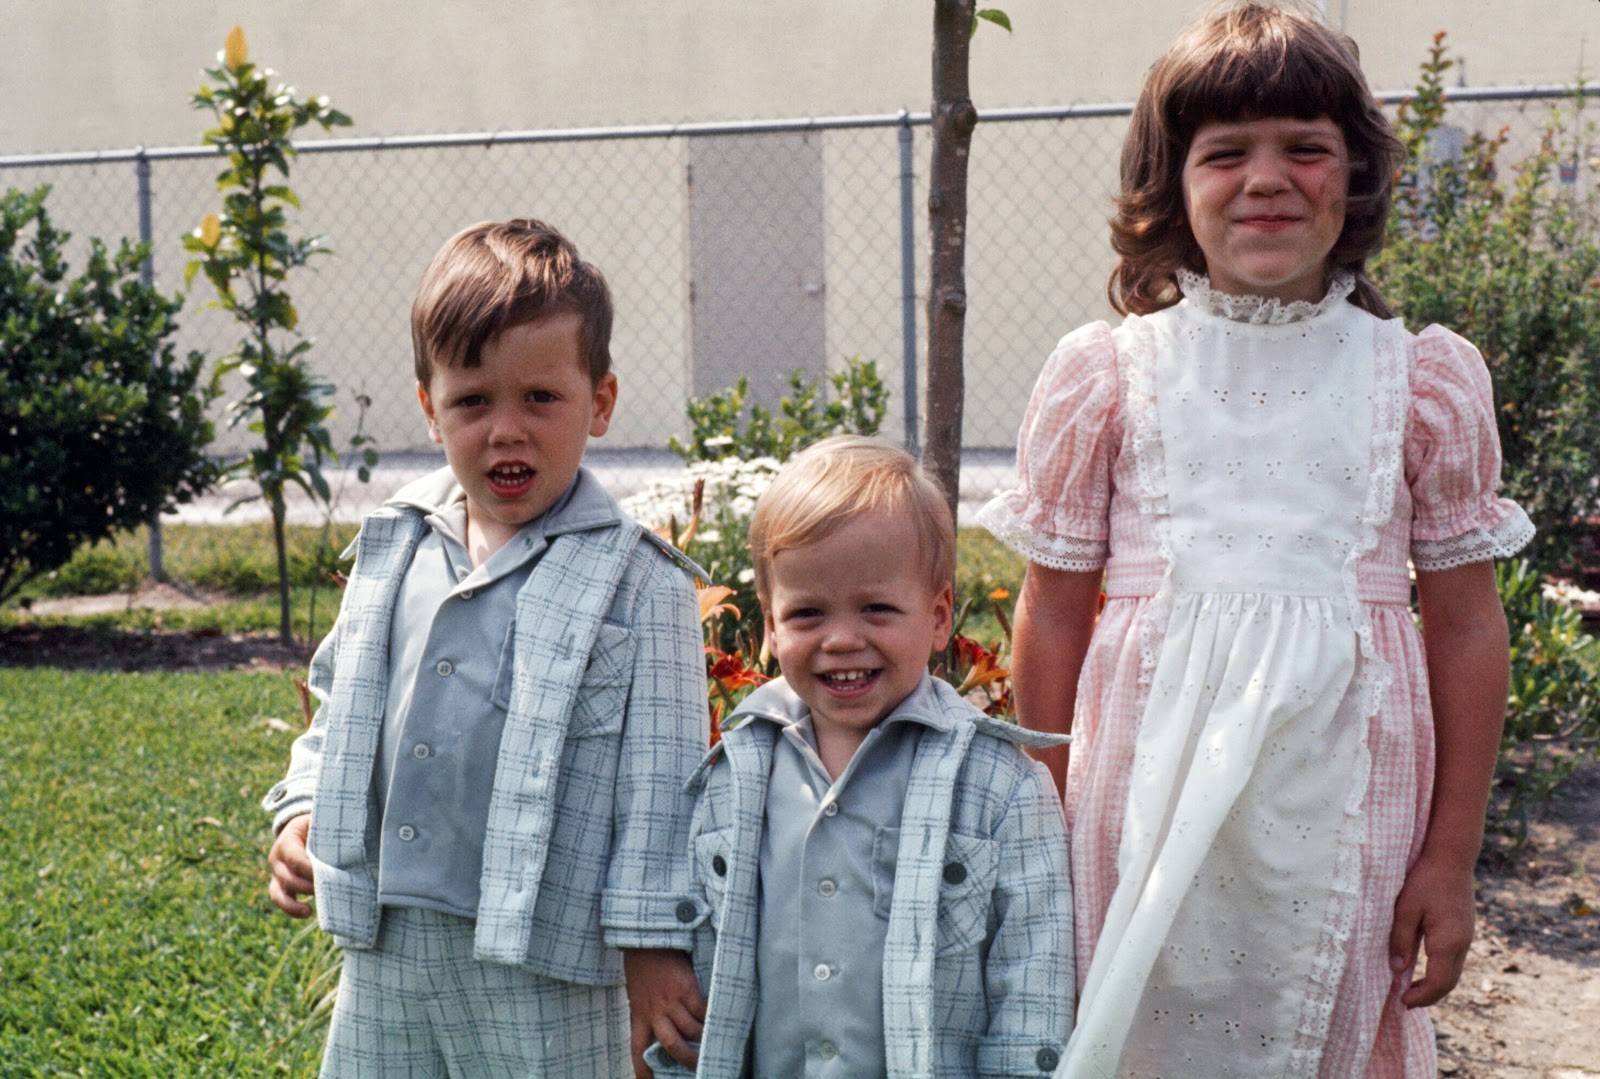 Leslie McMillan's Children About 40 Years Ago